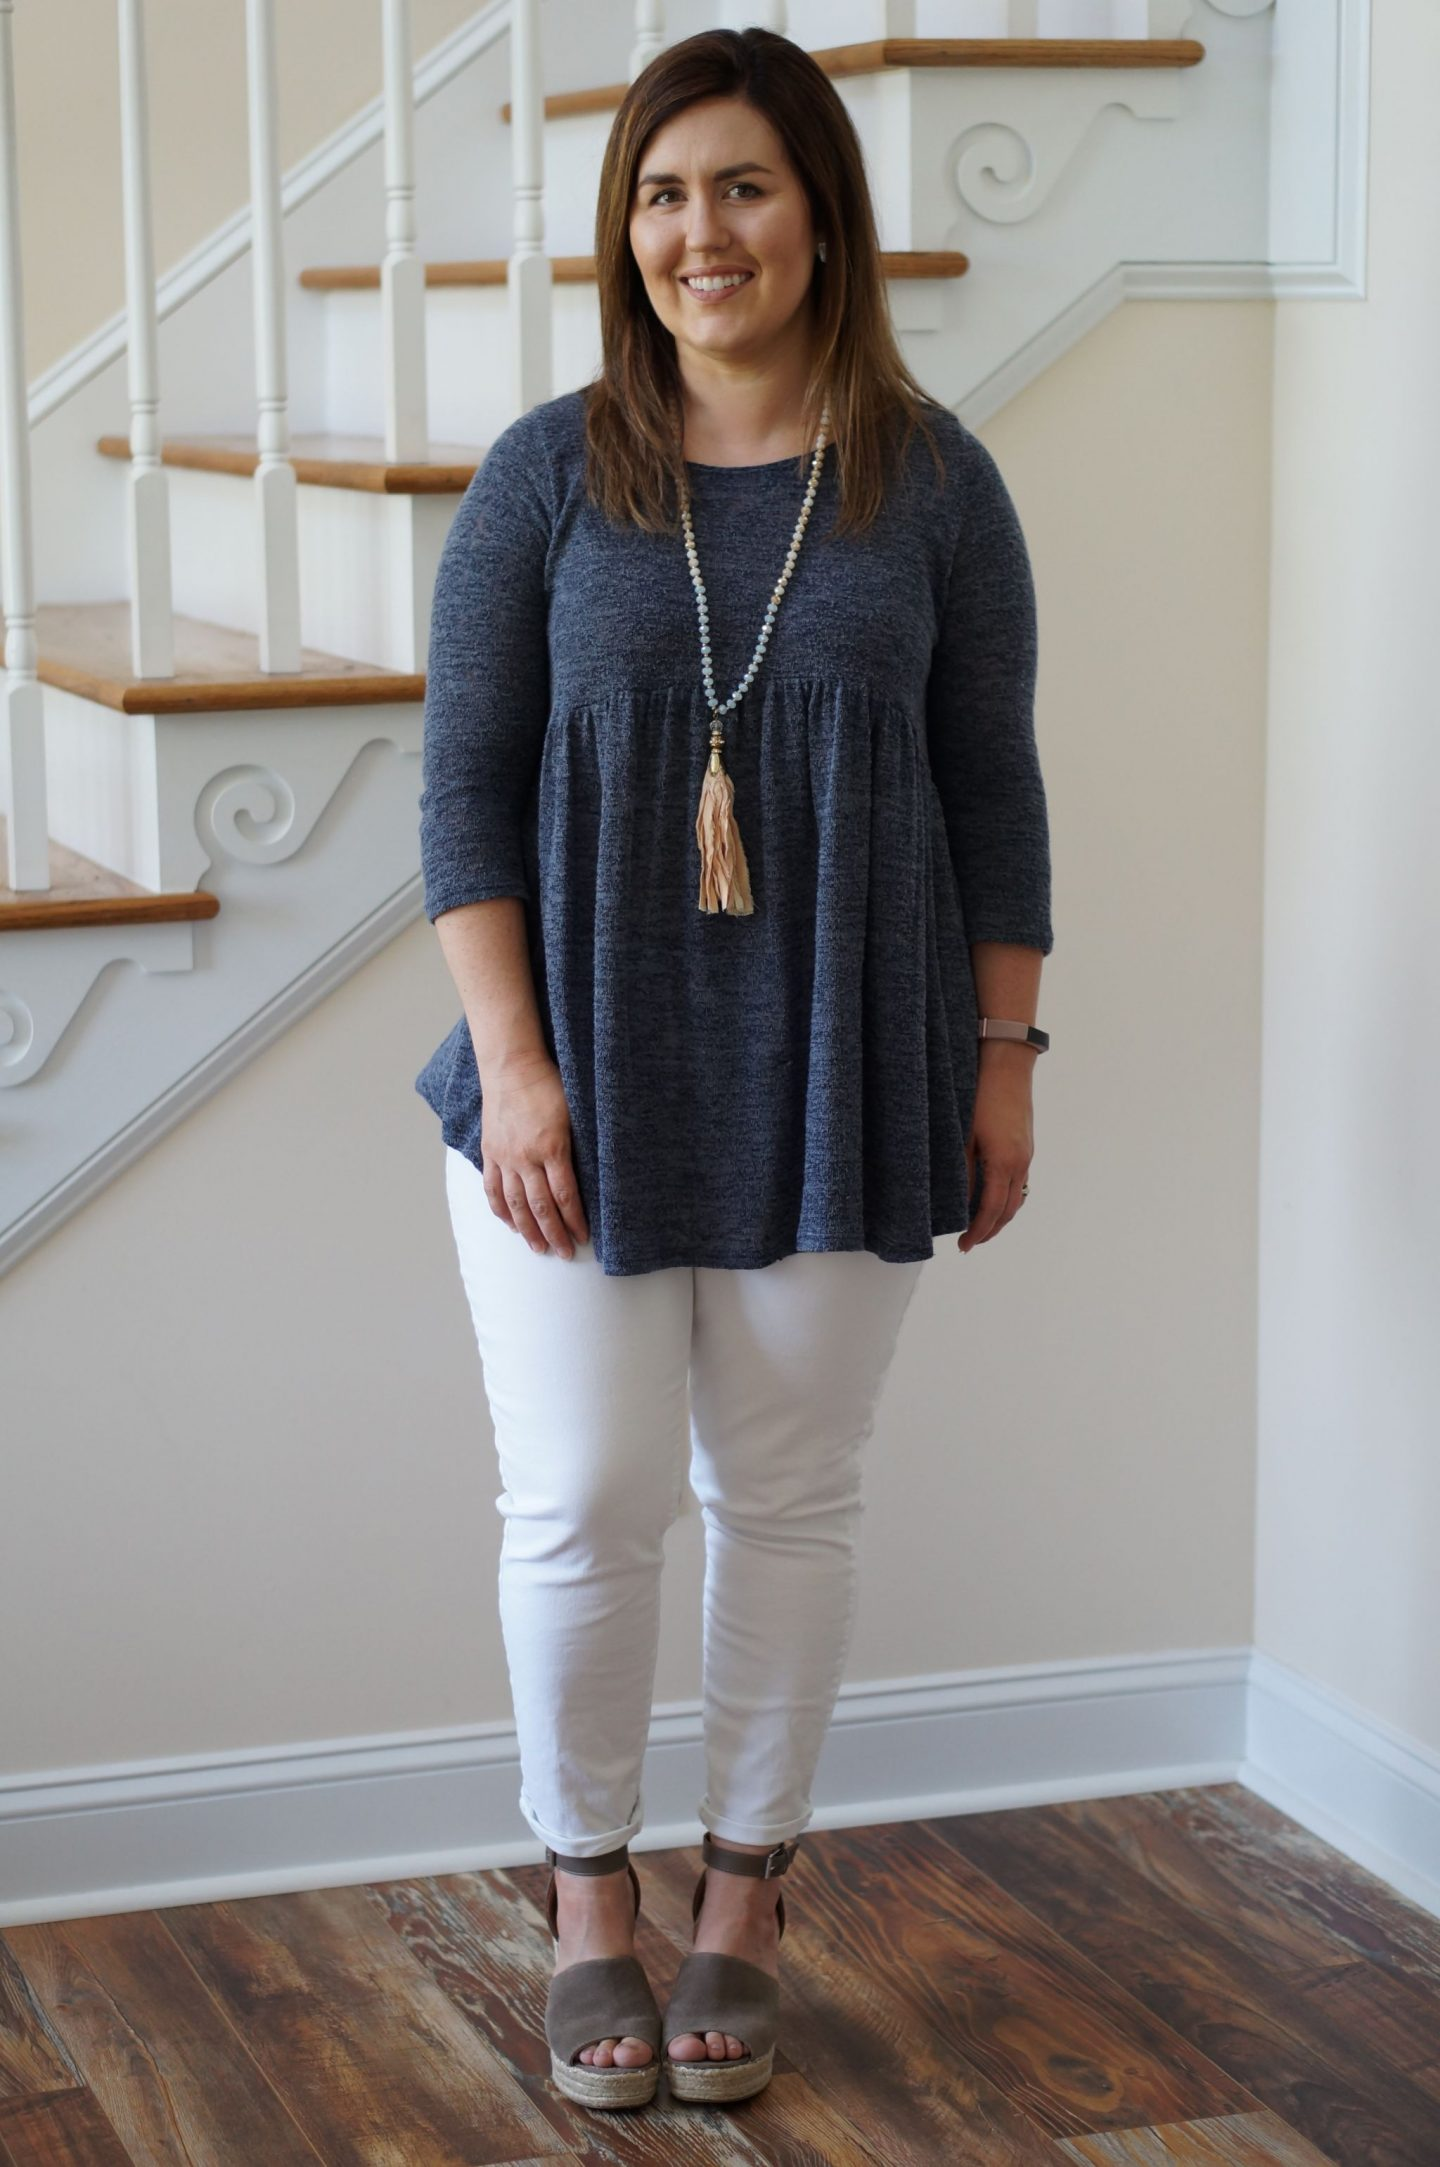 Finding the perfect transition outfit doesn't have to be hard. Today, I combined a few of my favorite pieces from each season and voila! I love this outfit!